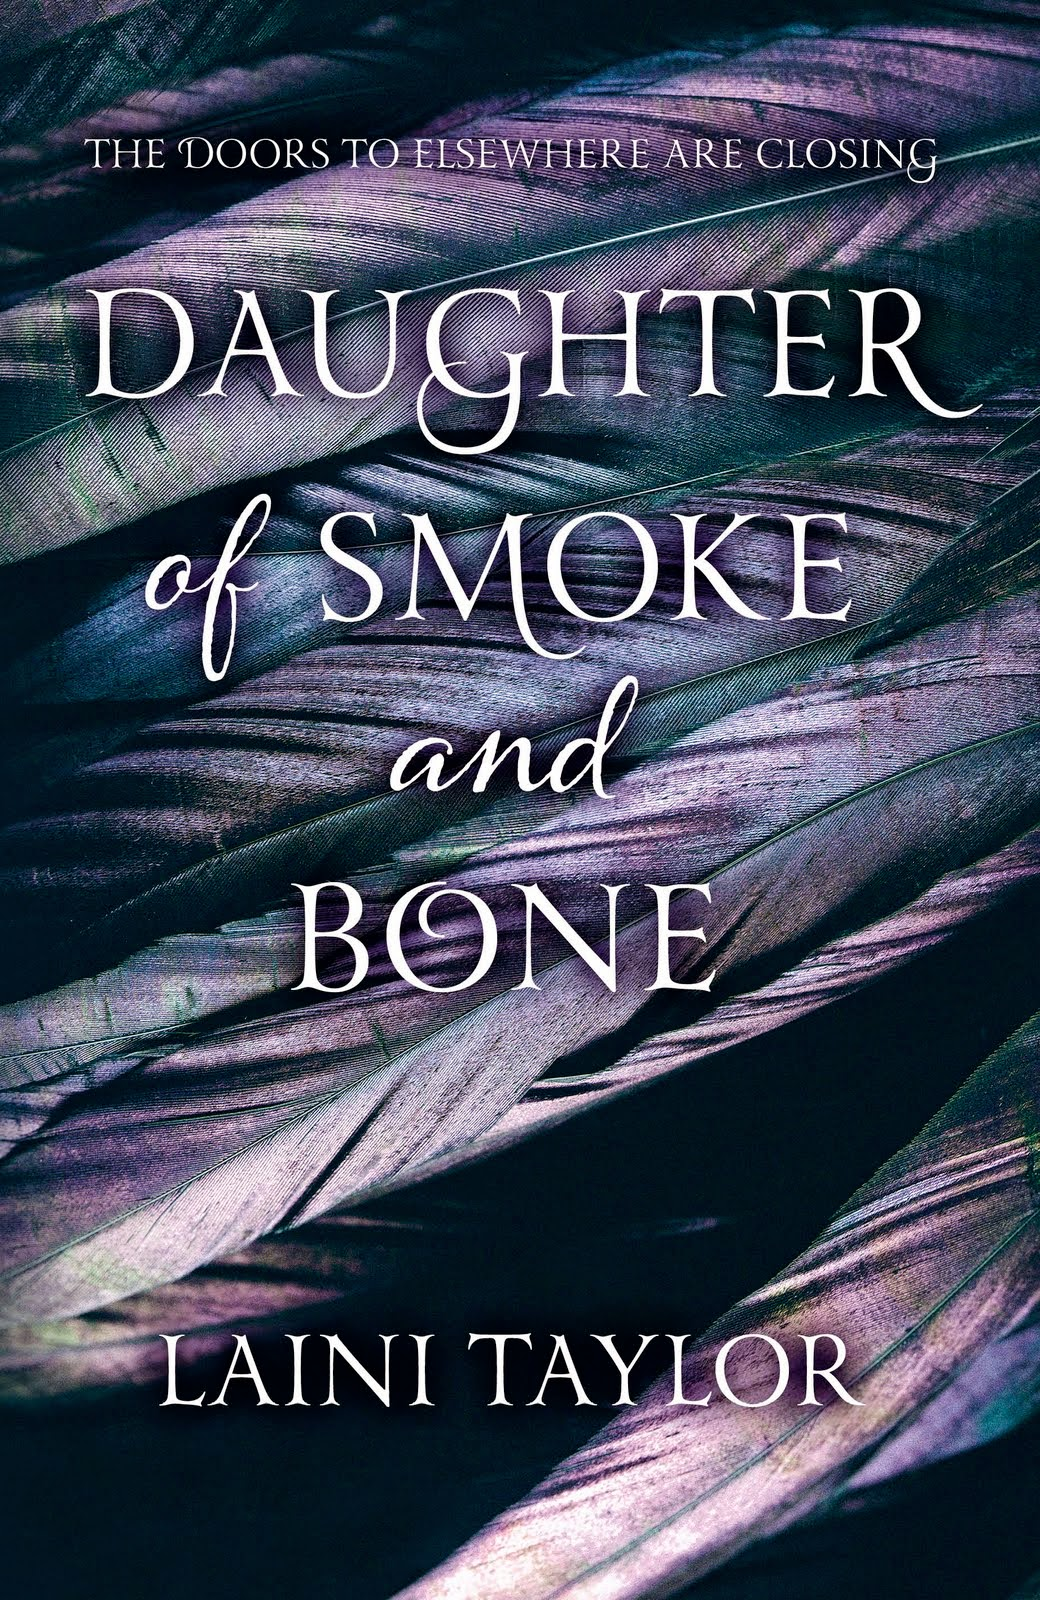 UK hardback book cover of Daughter of Smoke and Bone by Laini Taylor